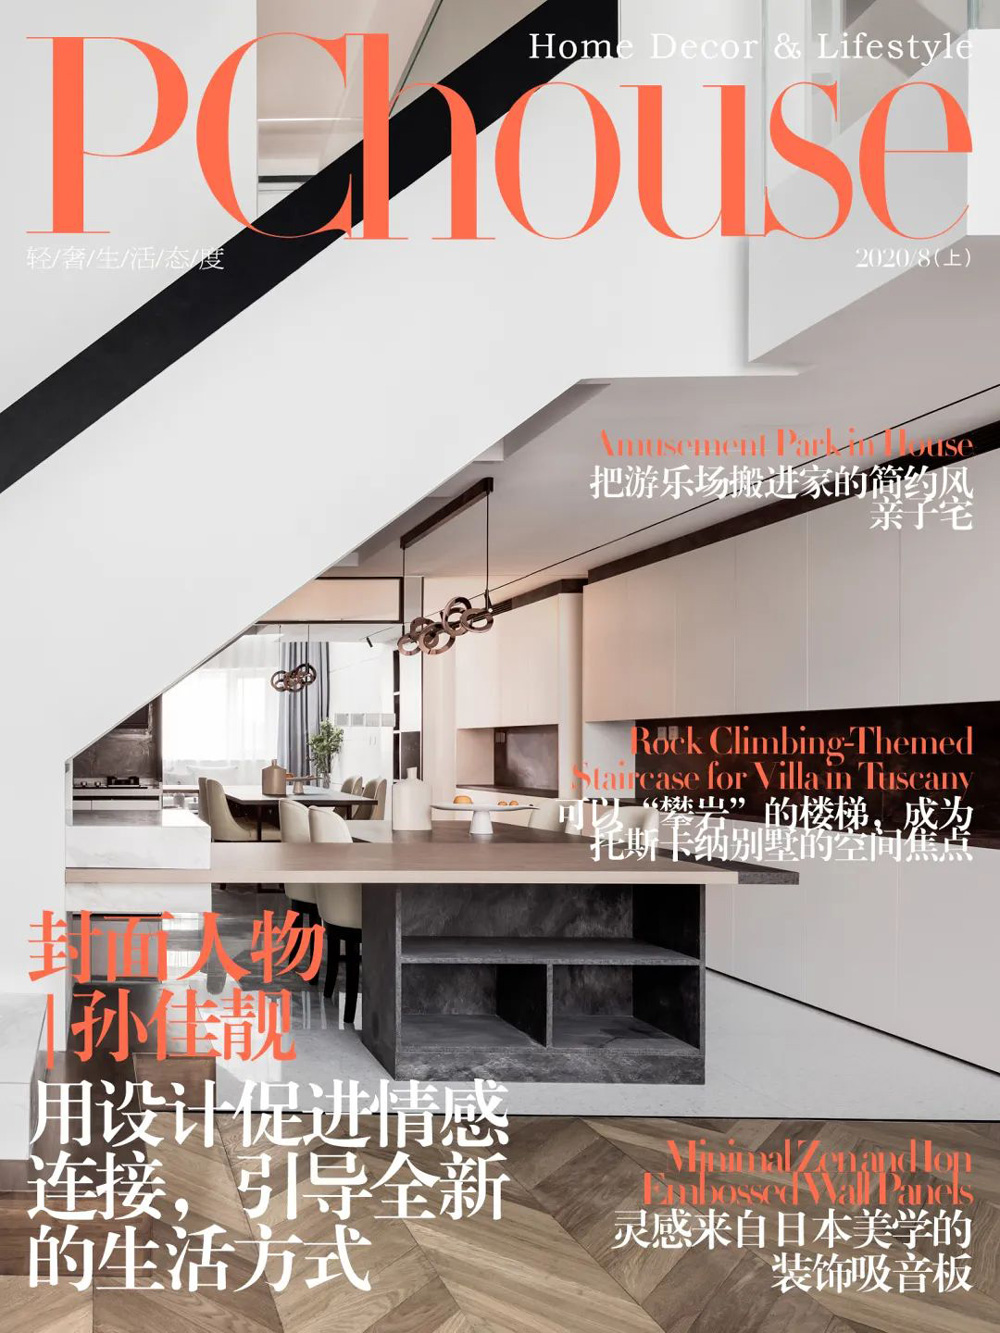 PG House magazine, House LG, Interior Design, Prato, Deferrari Modesti